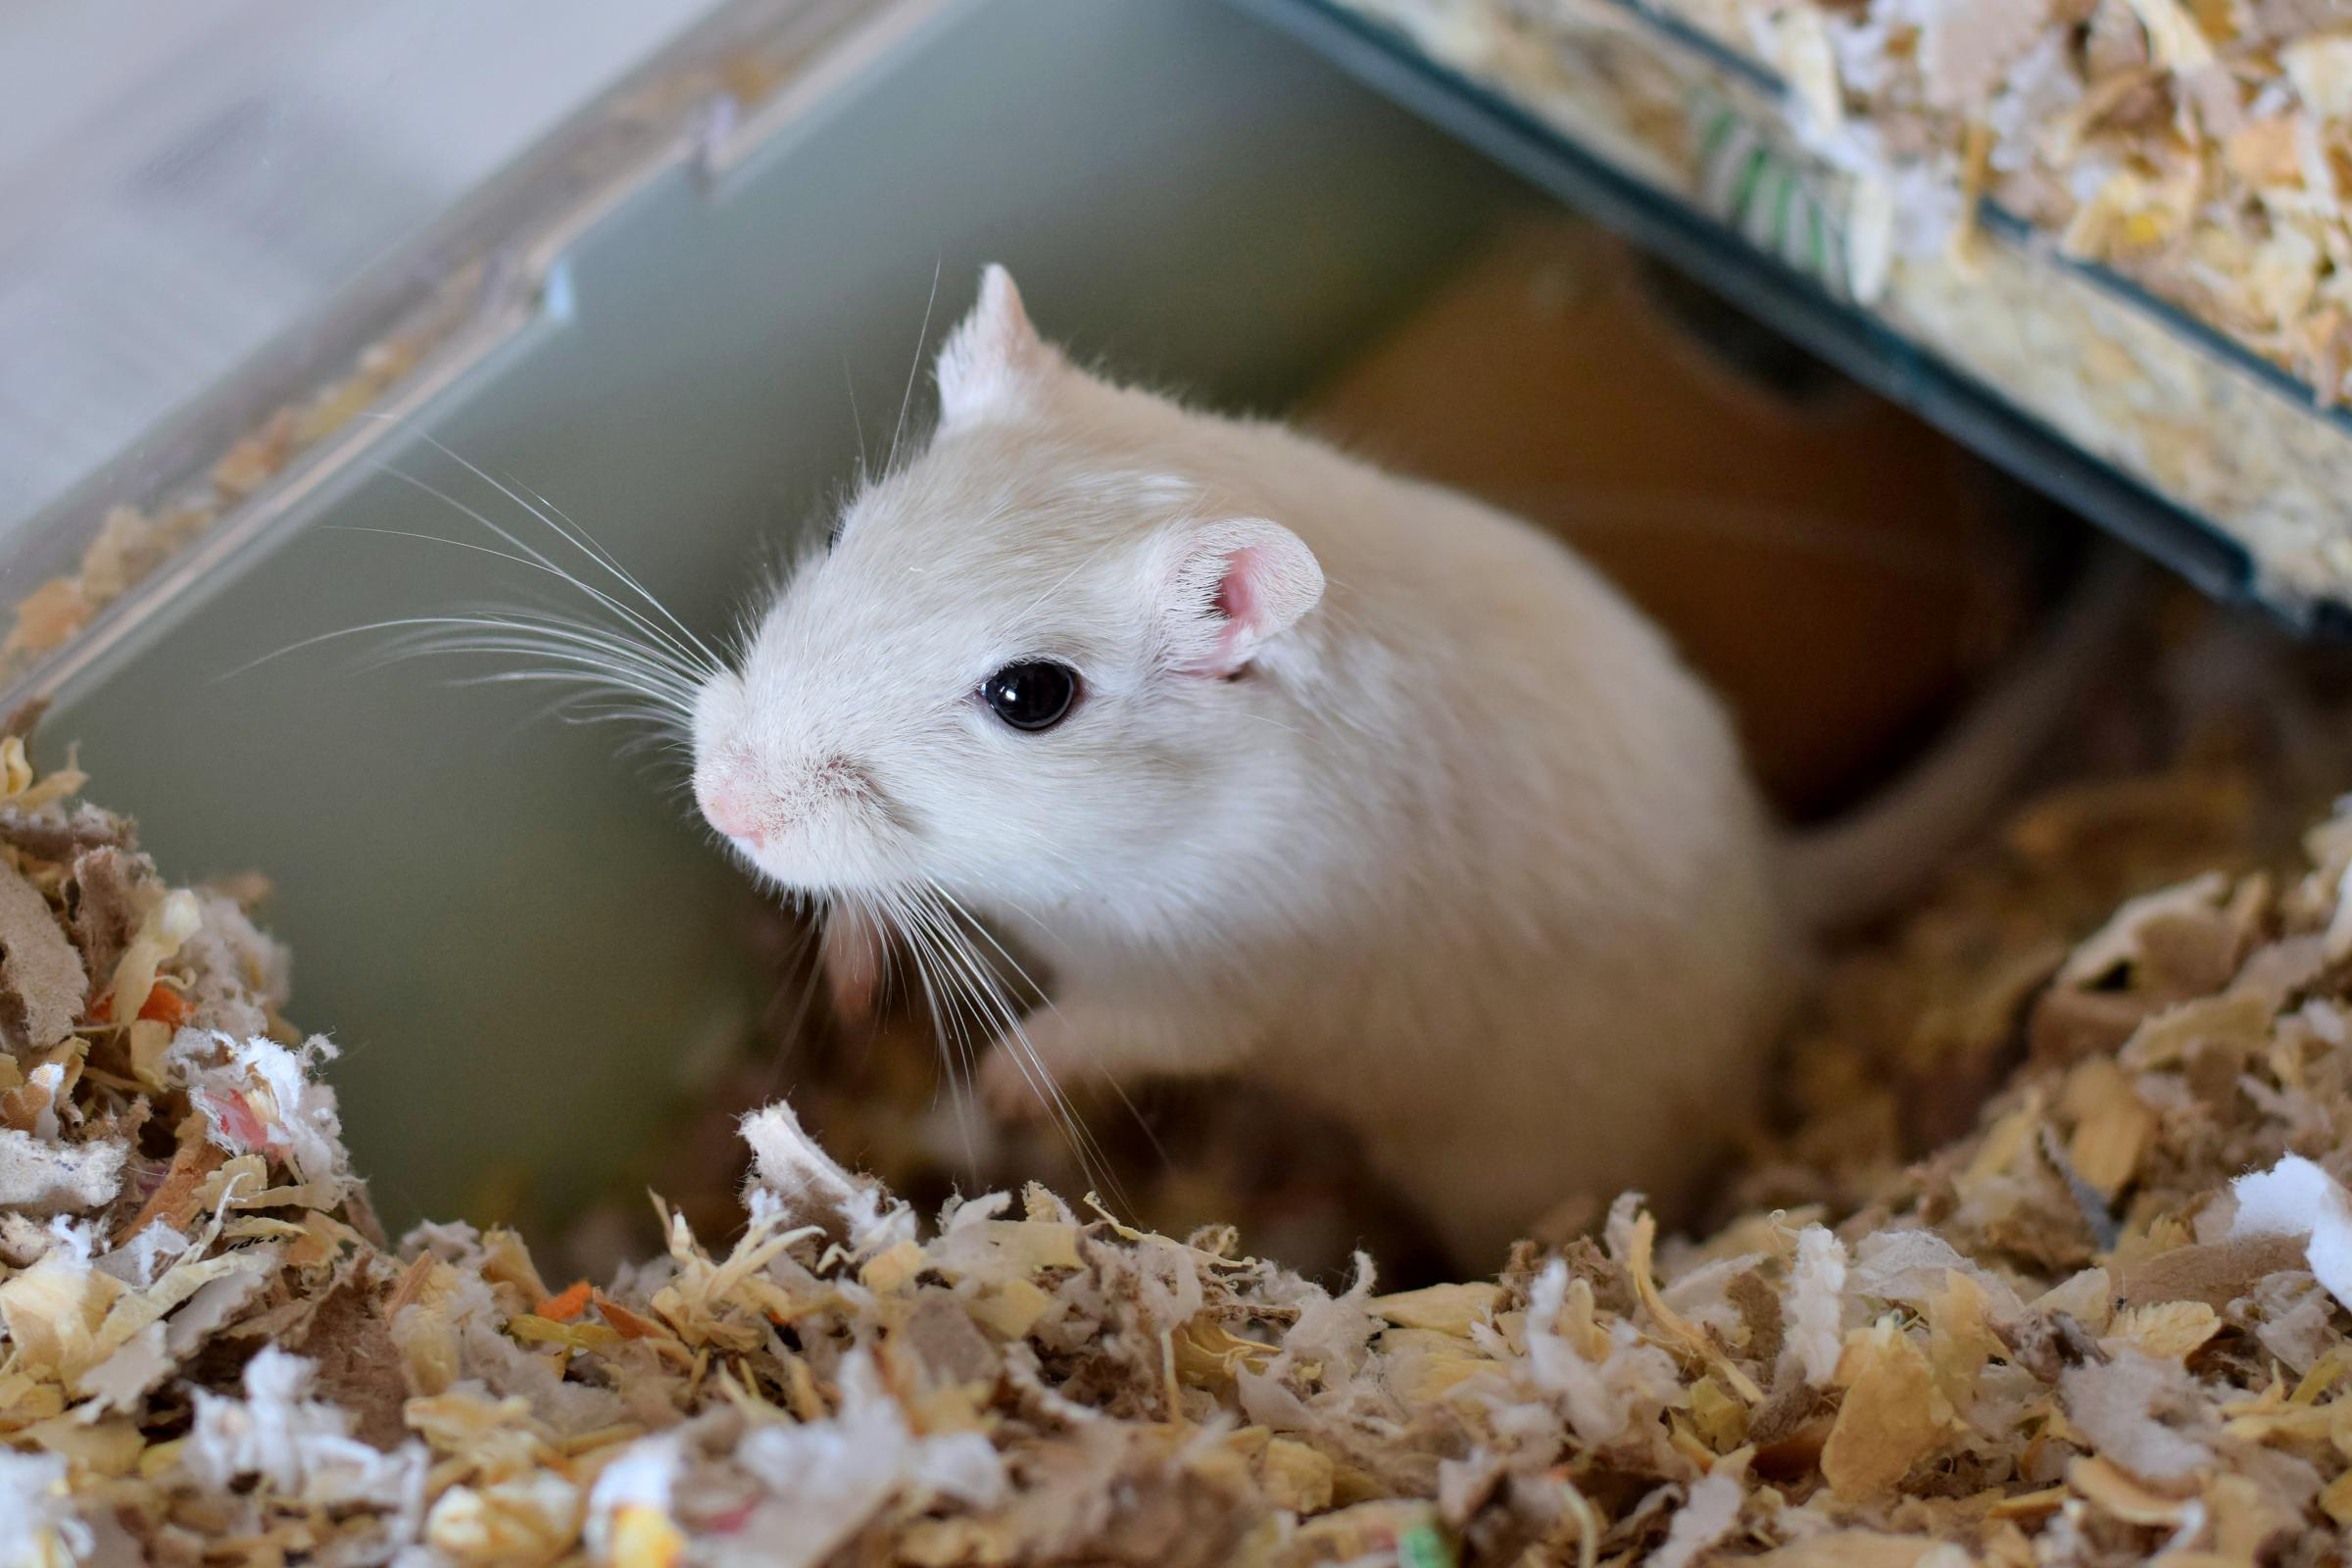 A white gerbil in a cage